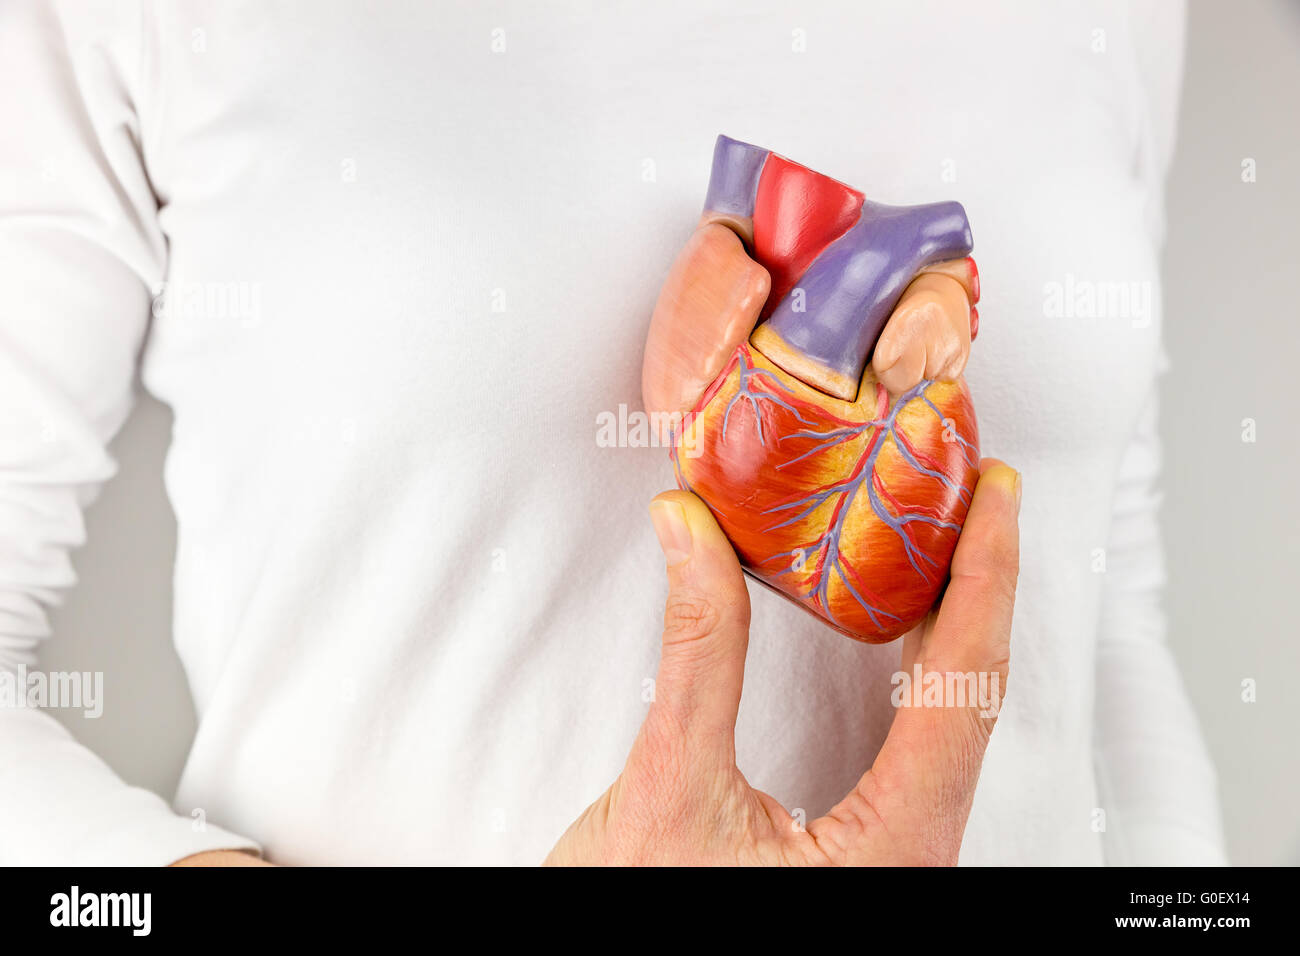 Chest Blood Vessels Stock Photos & Chest Blood Vessels Stock Images ...